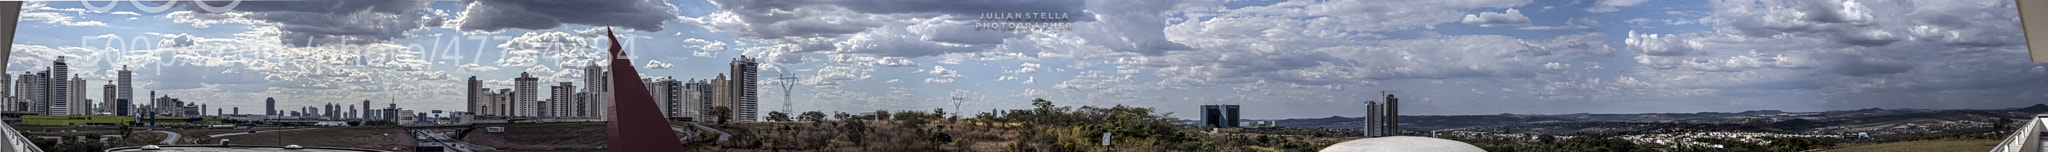 Photograph 180º HDR by Julian Stella on 500px